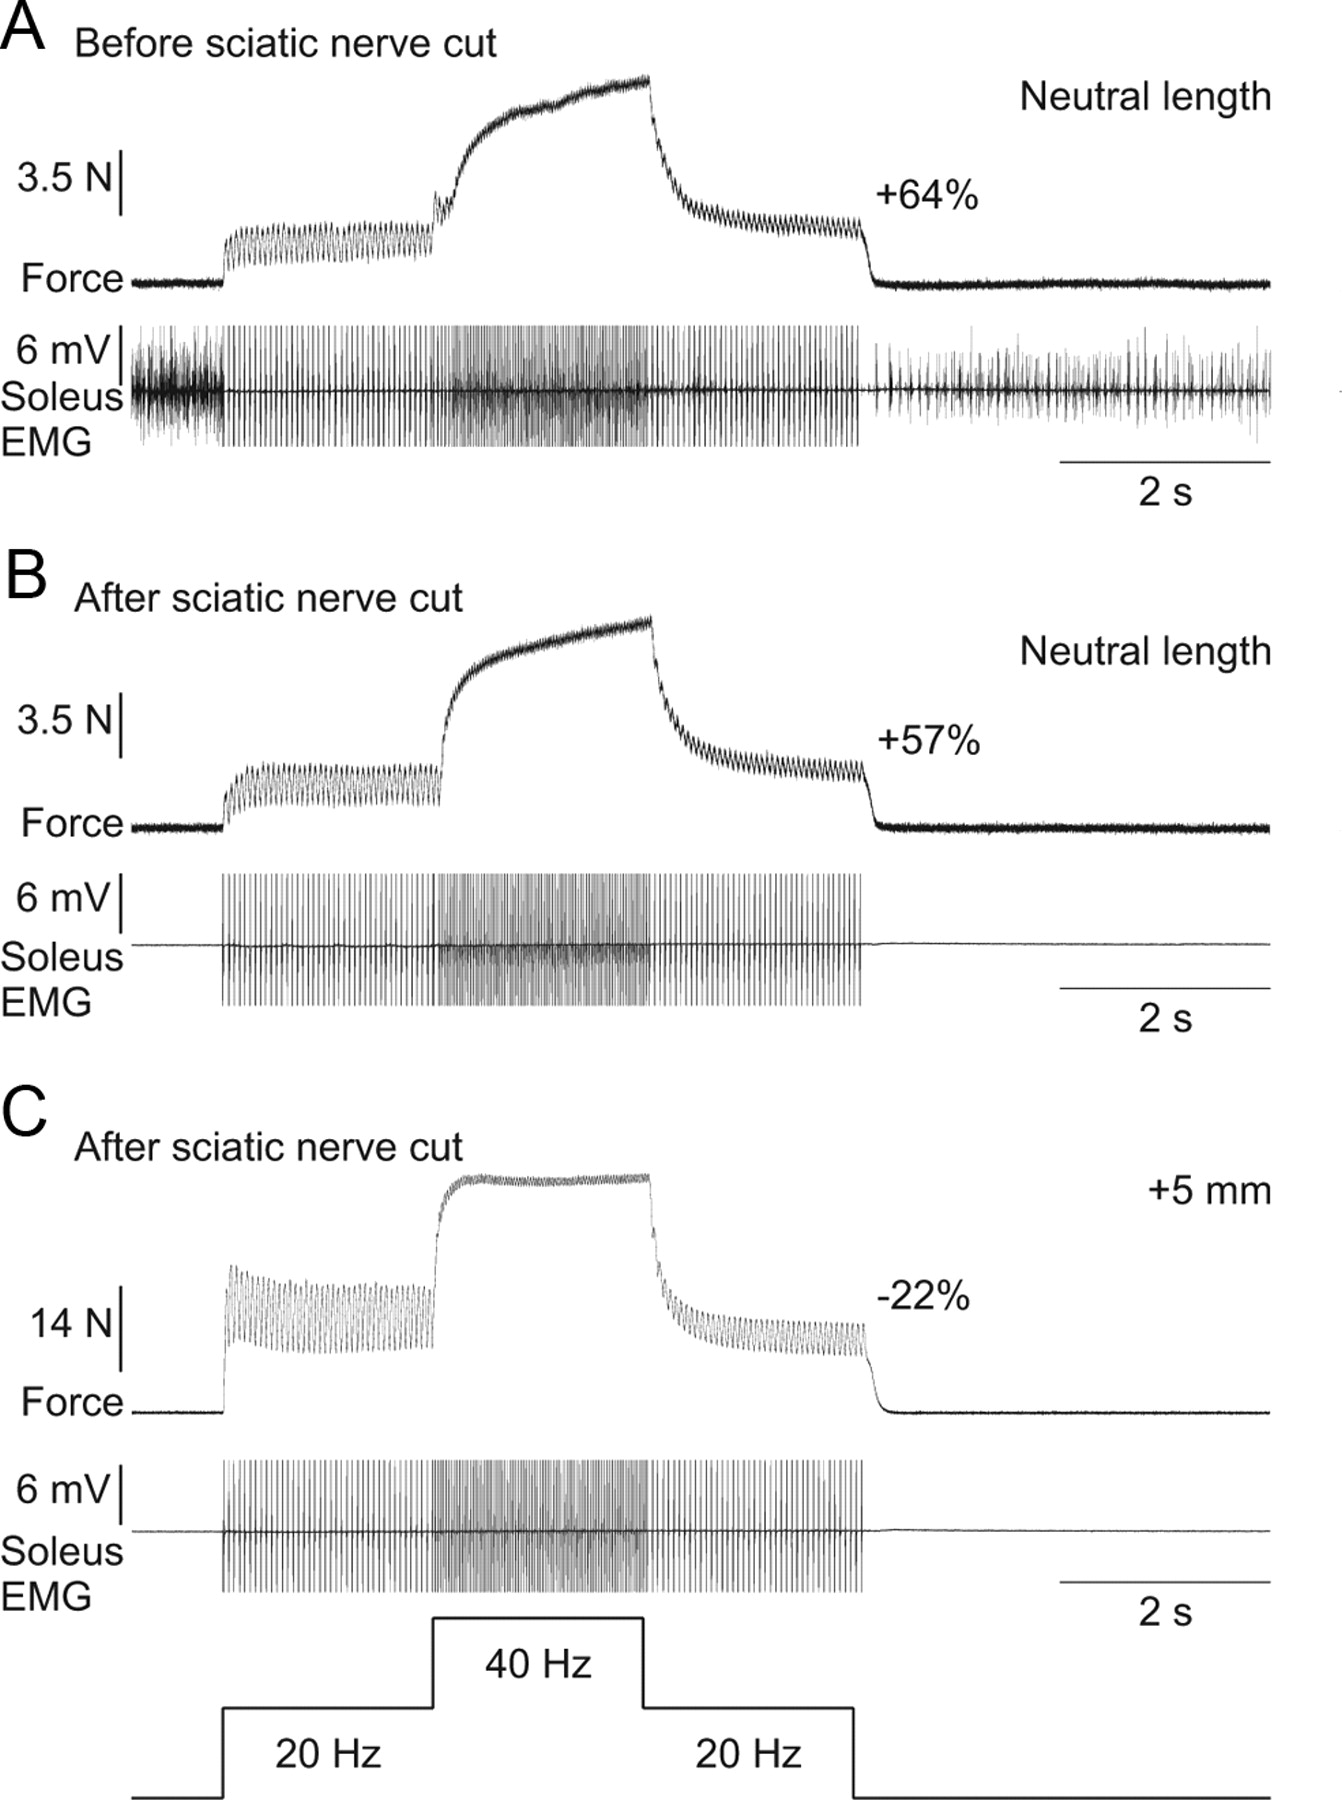 Extra Forces Evoked During Electrical Stimulation Of The Muscle Or 64 Et Wiring Diagram Download Figure